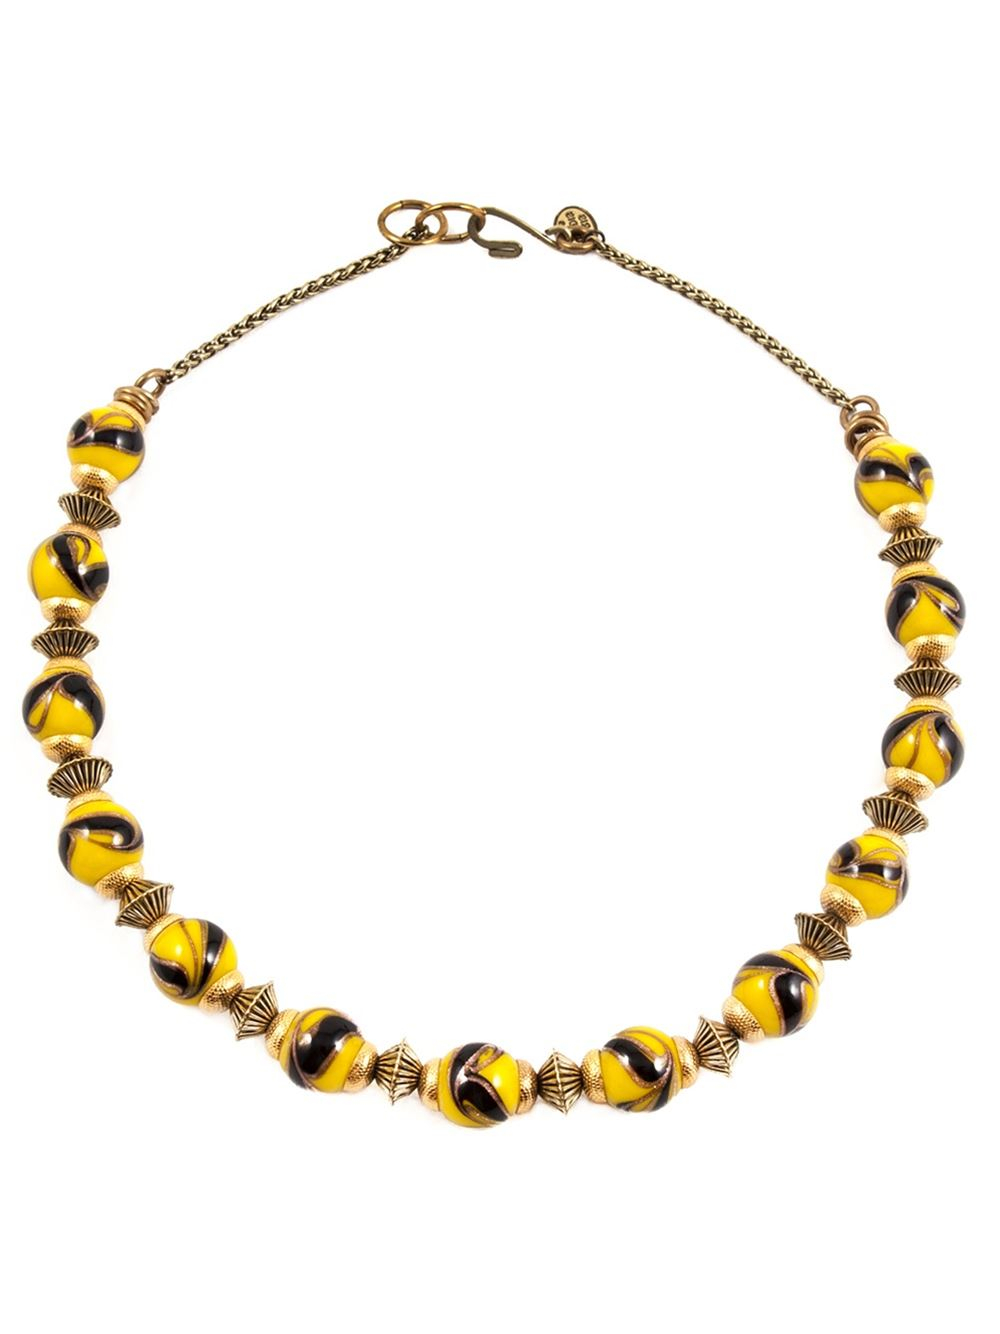 Aris Geldis Three Circular Choker Necklace in Gold and Black Onyx Plated Brass rA3EQAl